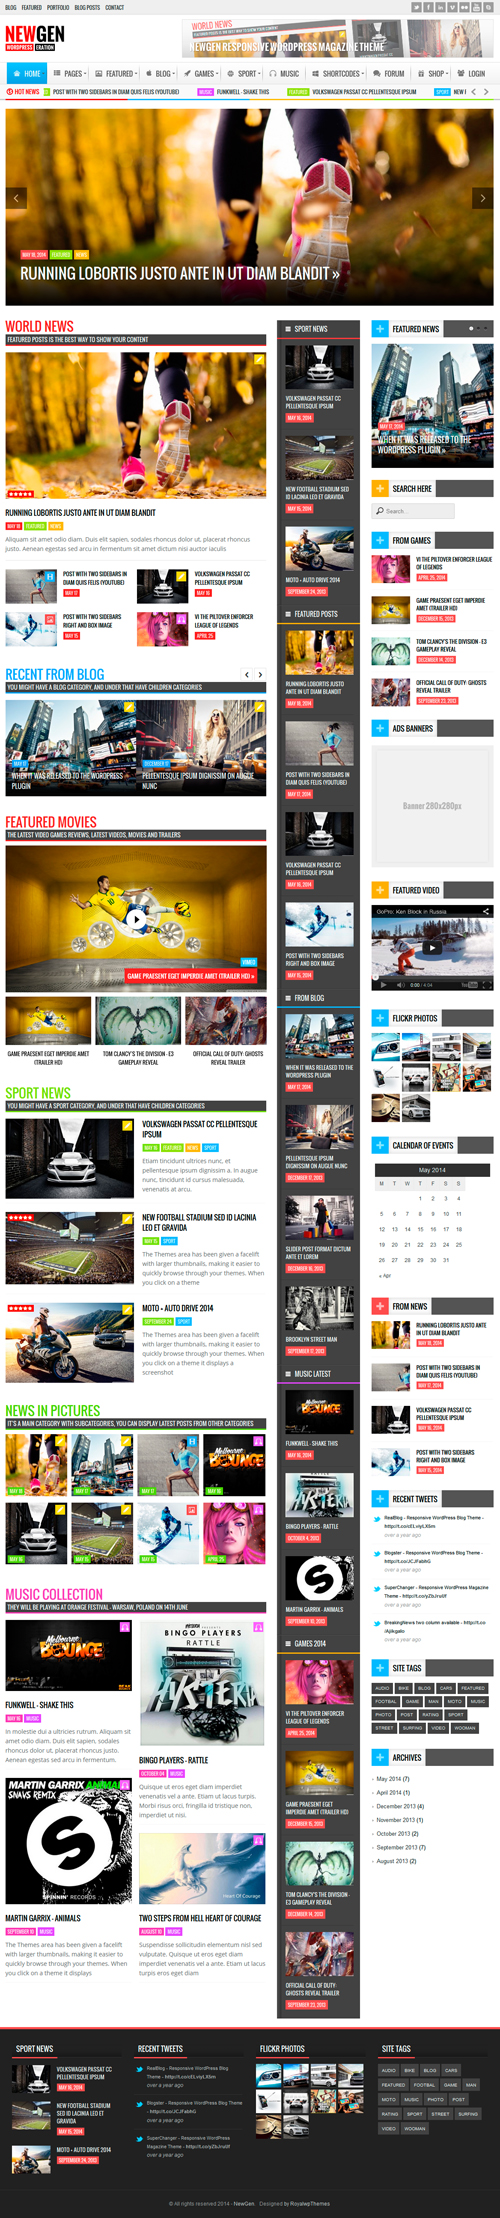 Newgen - Responsive News/Magazine WordPress Theme